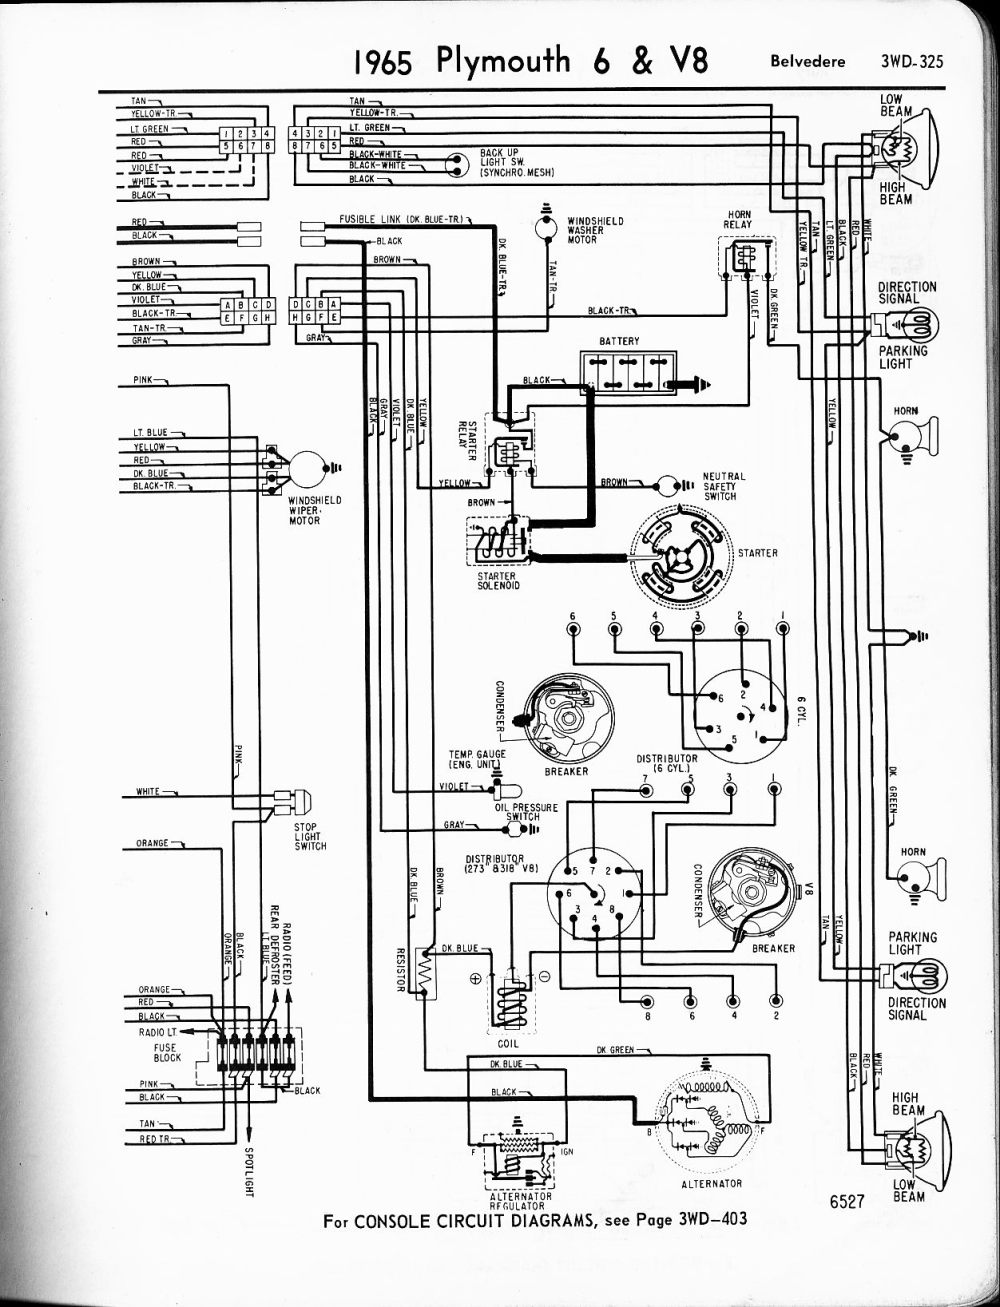 medium resolution of 66 fury wiring diagram wiring diagram fascinating66 fury wiring diagram wiring diagram info 64 plymouth fury